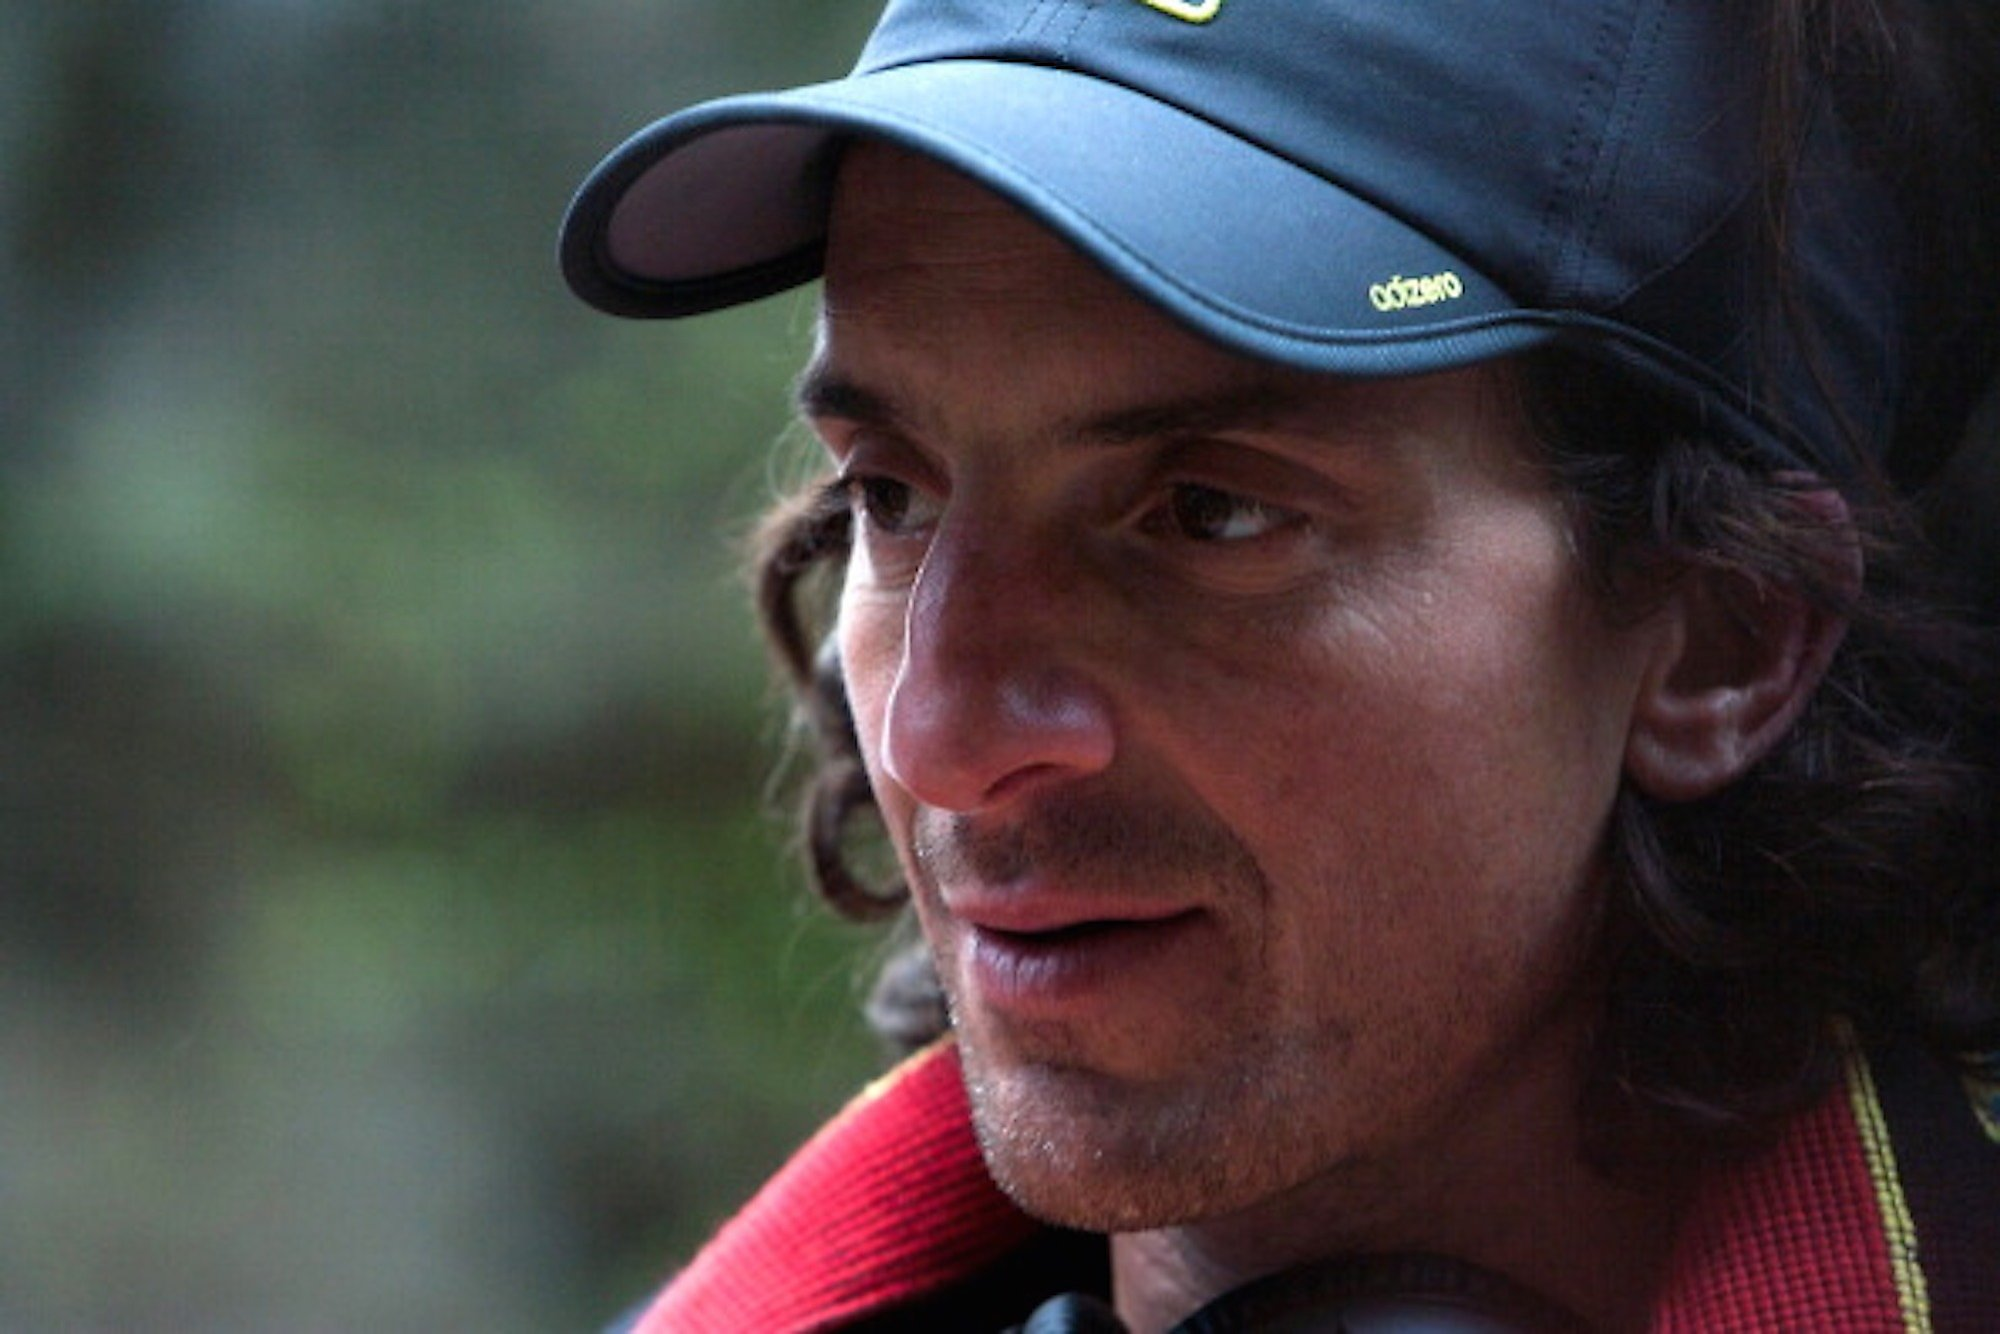 Extreme Athlete Dean Potter Fellow Climber Die In